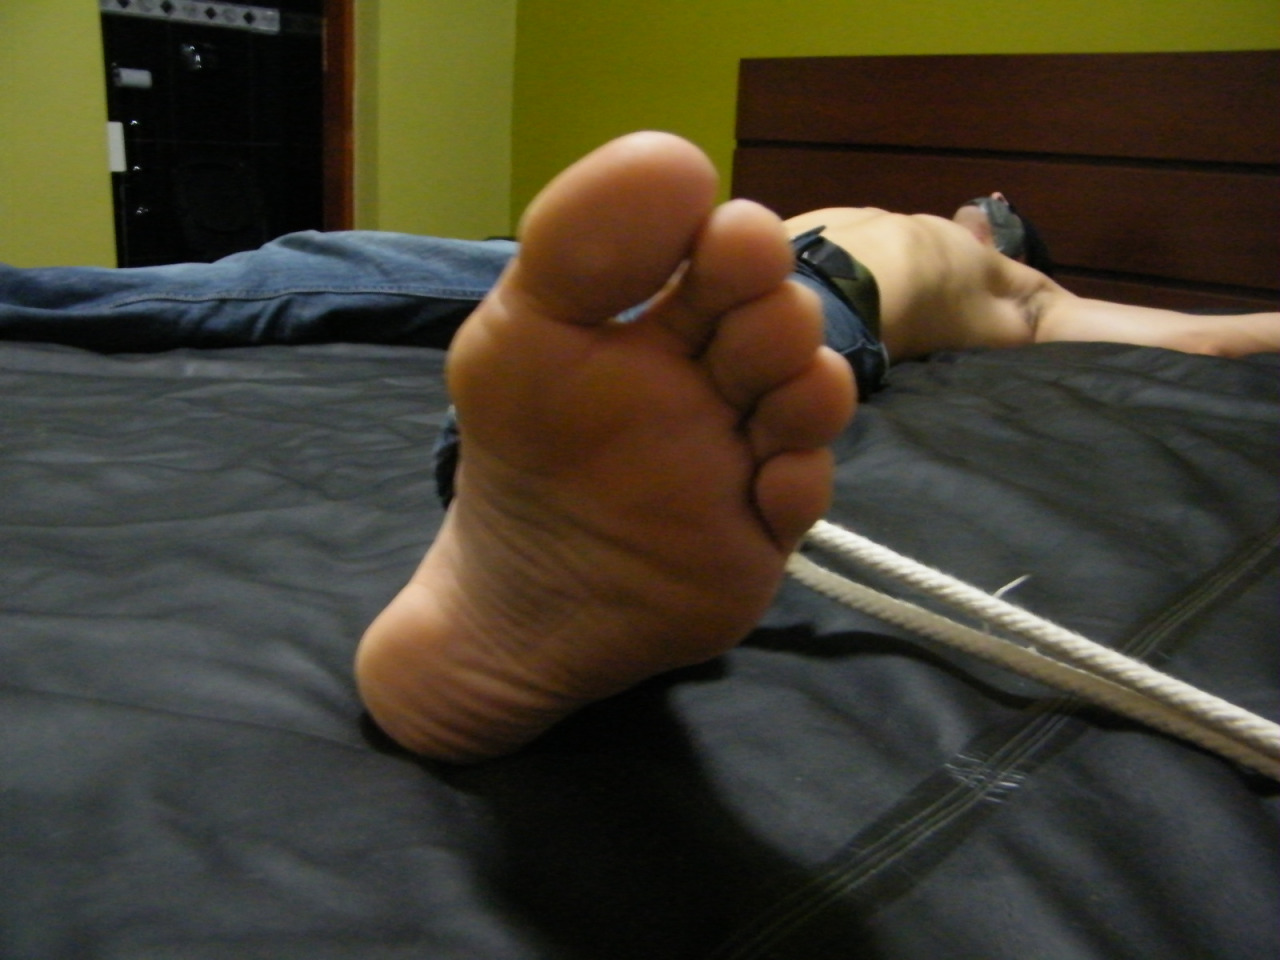 Spread out and barefoot